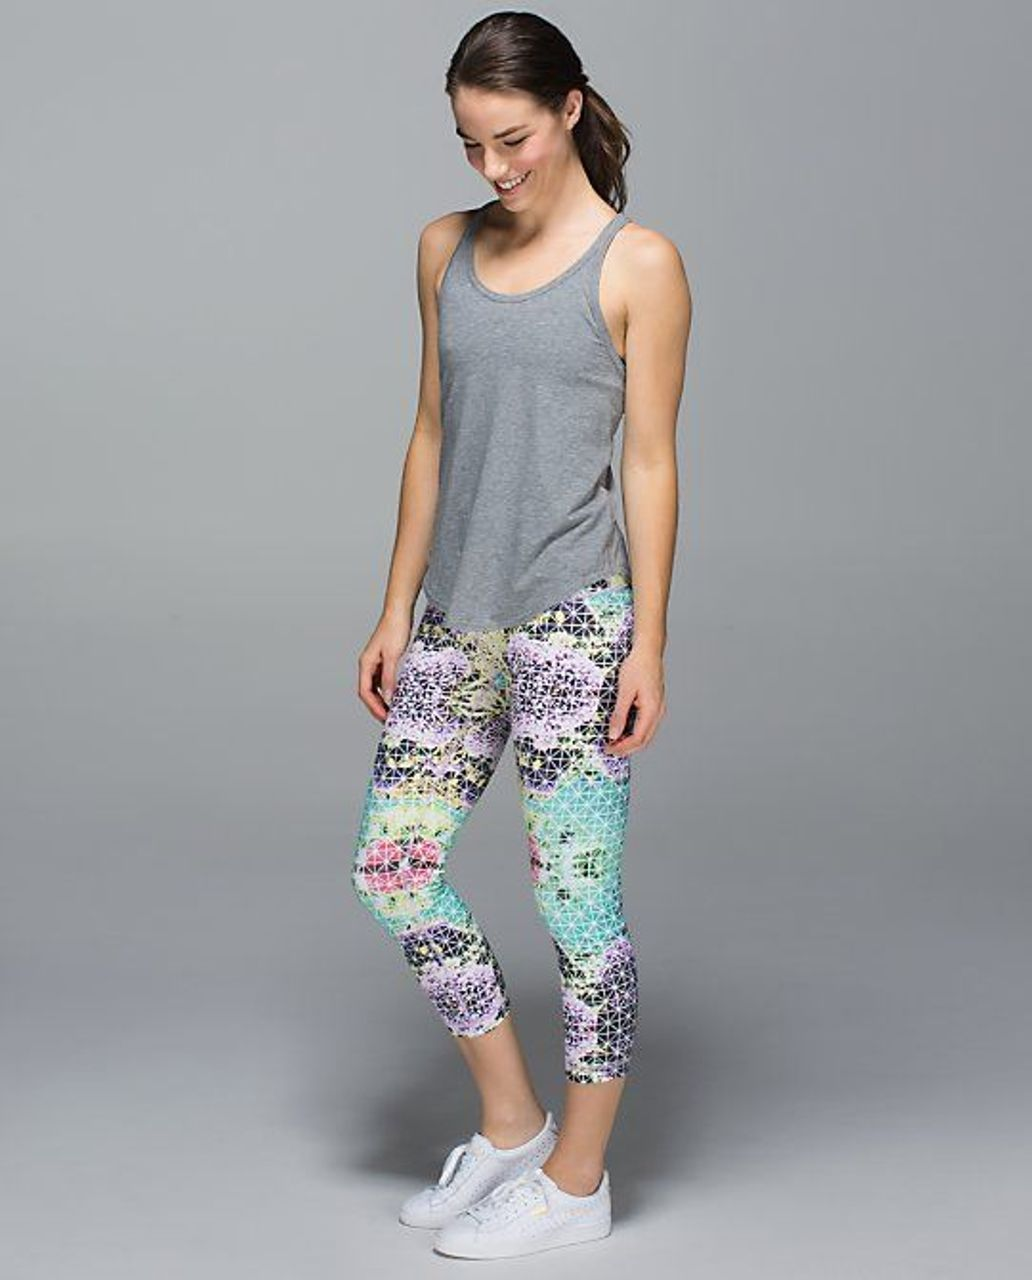 Lululemon Wunder Under Crop II *Full-On Luon (Roll Down) - Paradise Grid Very Green Multi